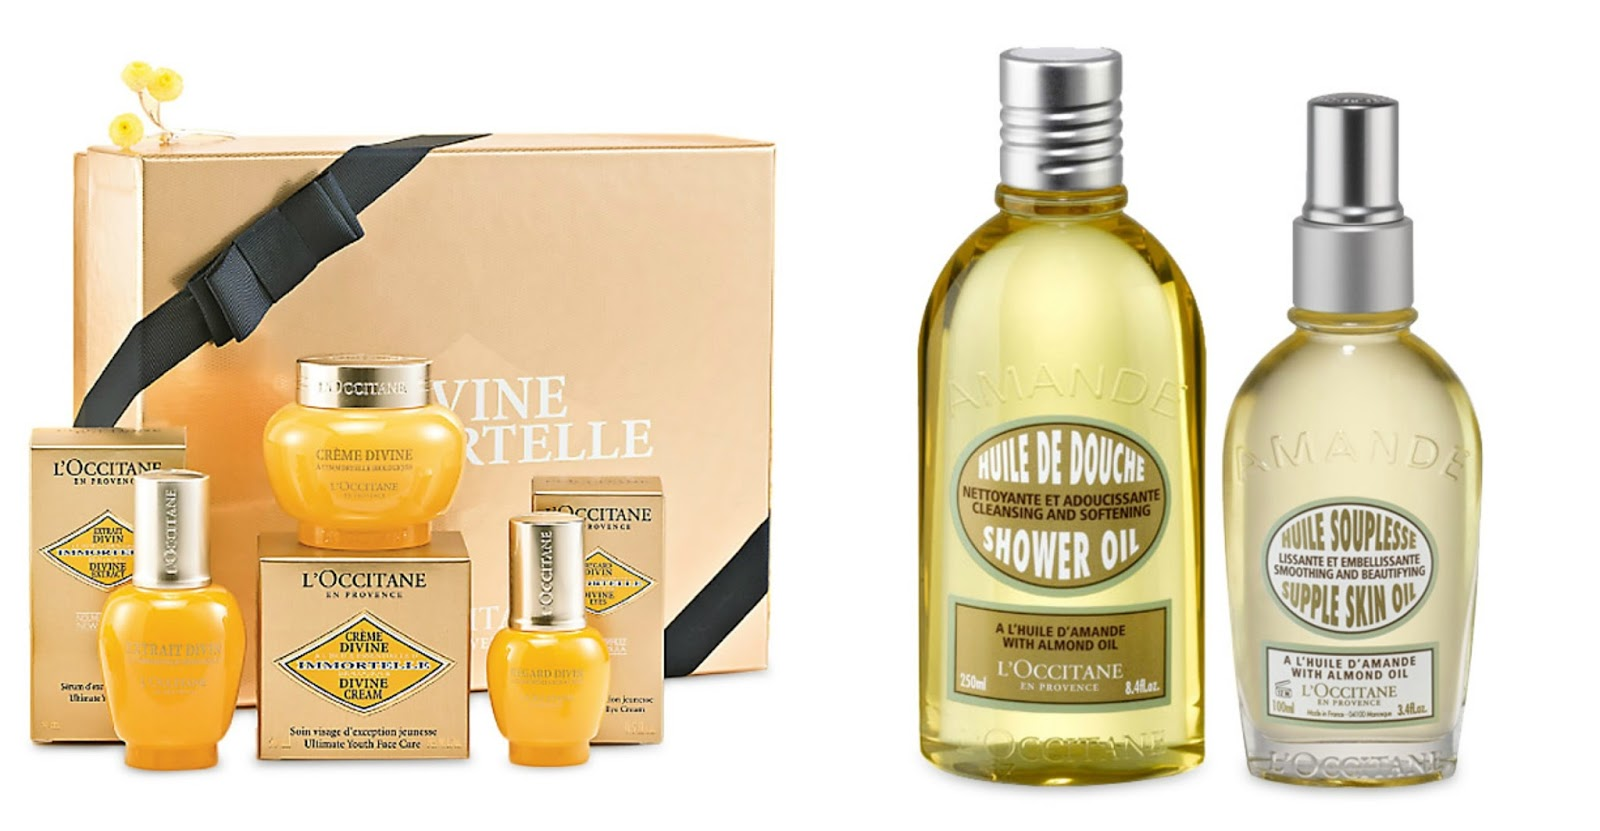 l'occitane summer gift set guide for all budgets full size products almond supple skin oil duo regenerating divine skincare trio